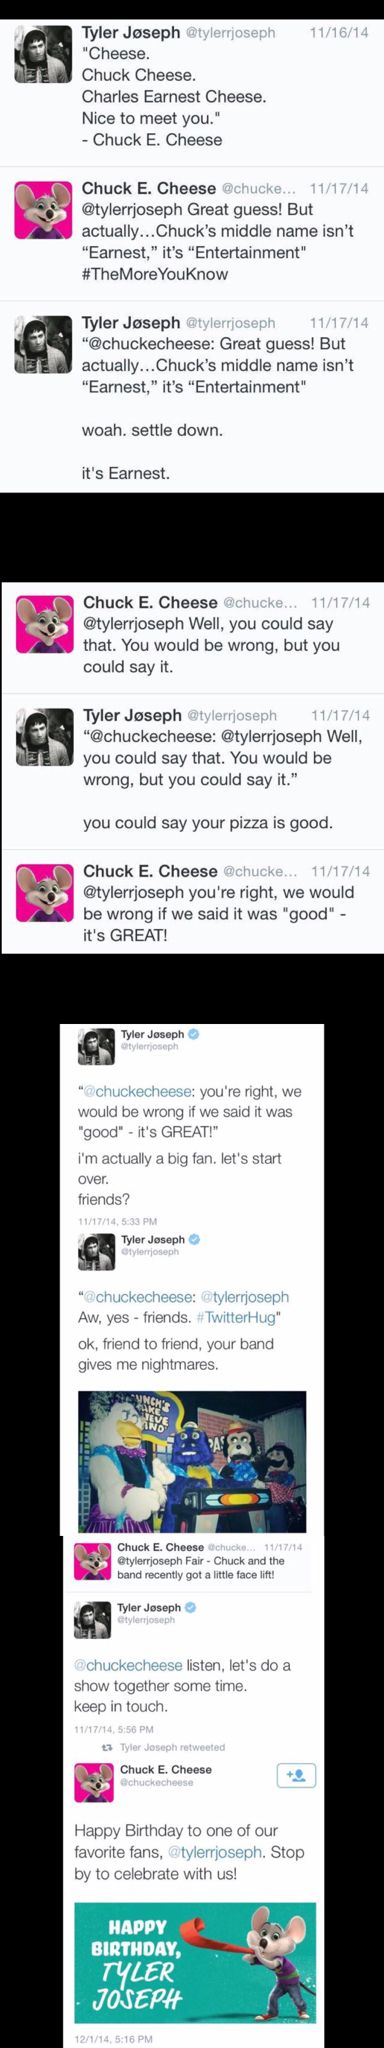 THAT IS THE BEST THING EVER SJDJSJJSJS I WILL NEVER LOOK AT CHUCK E. CHEESE'S THE SAME EJEJDHRK